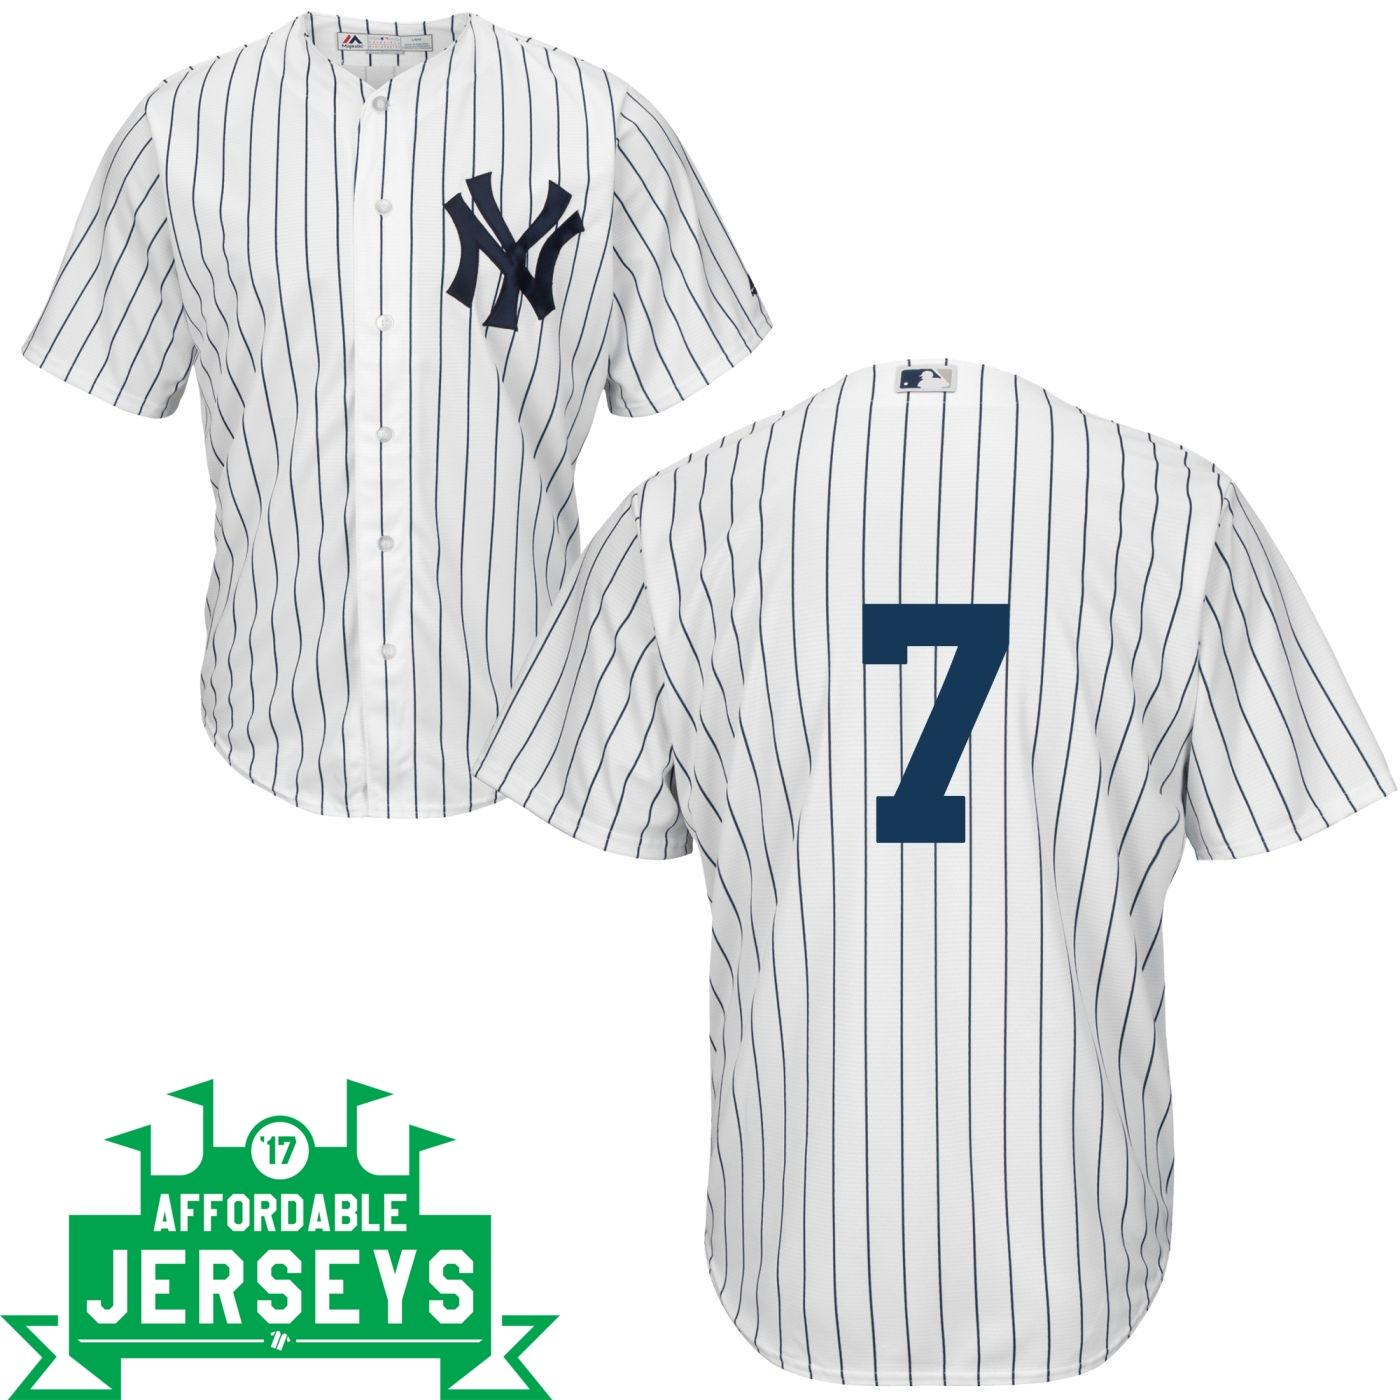 Tony Lazzeri Home Cool Base Player Jersey